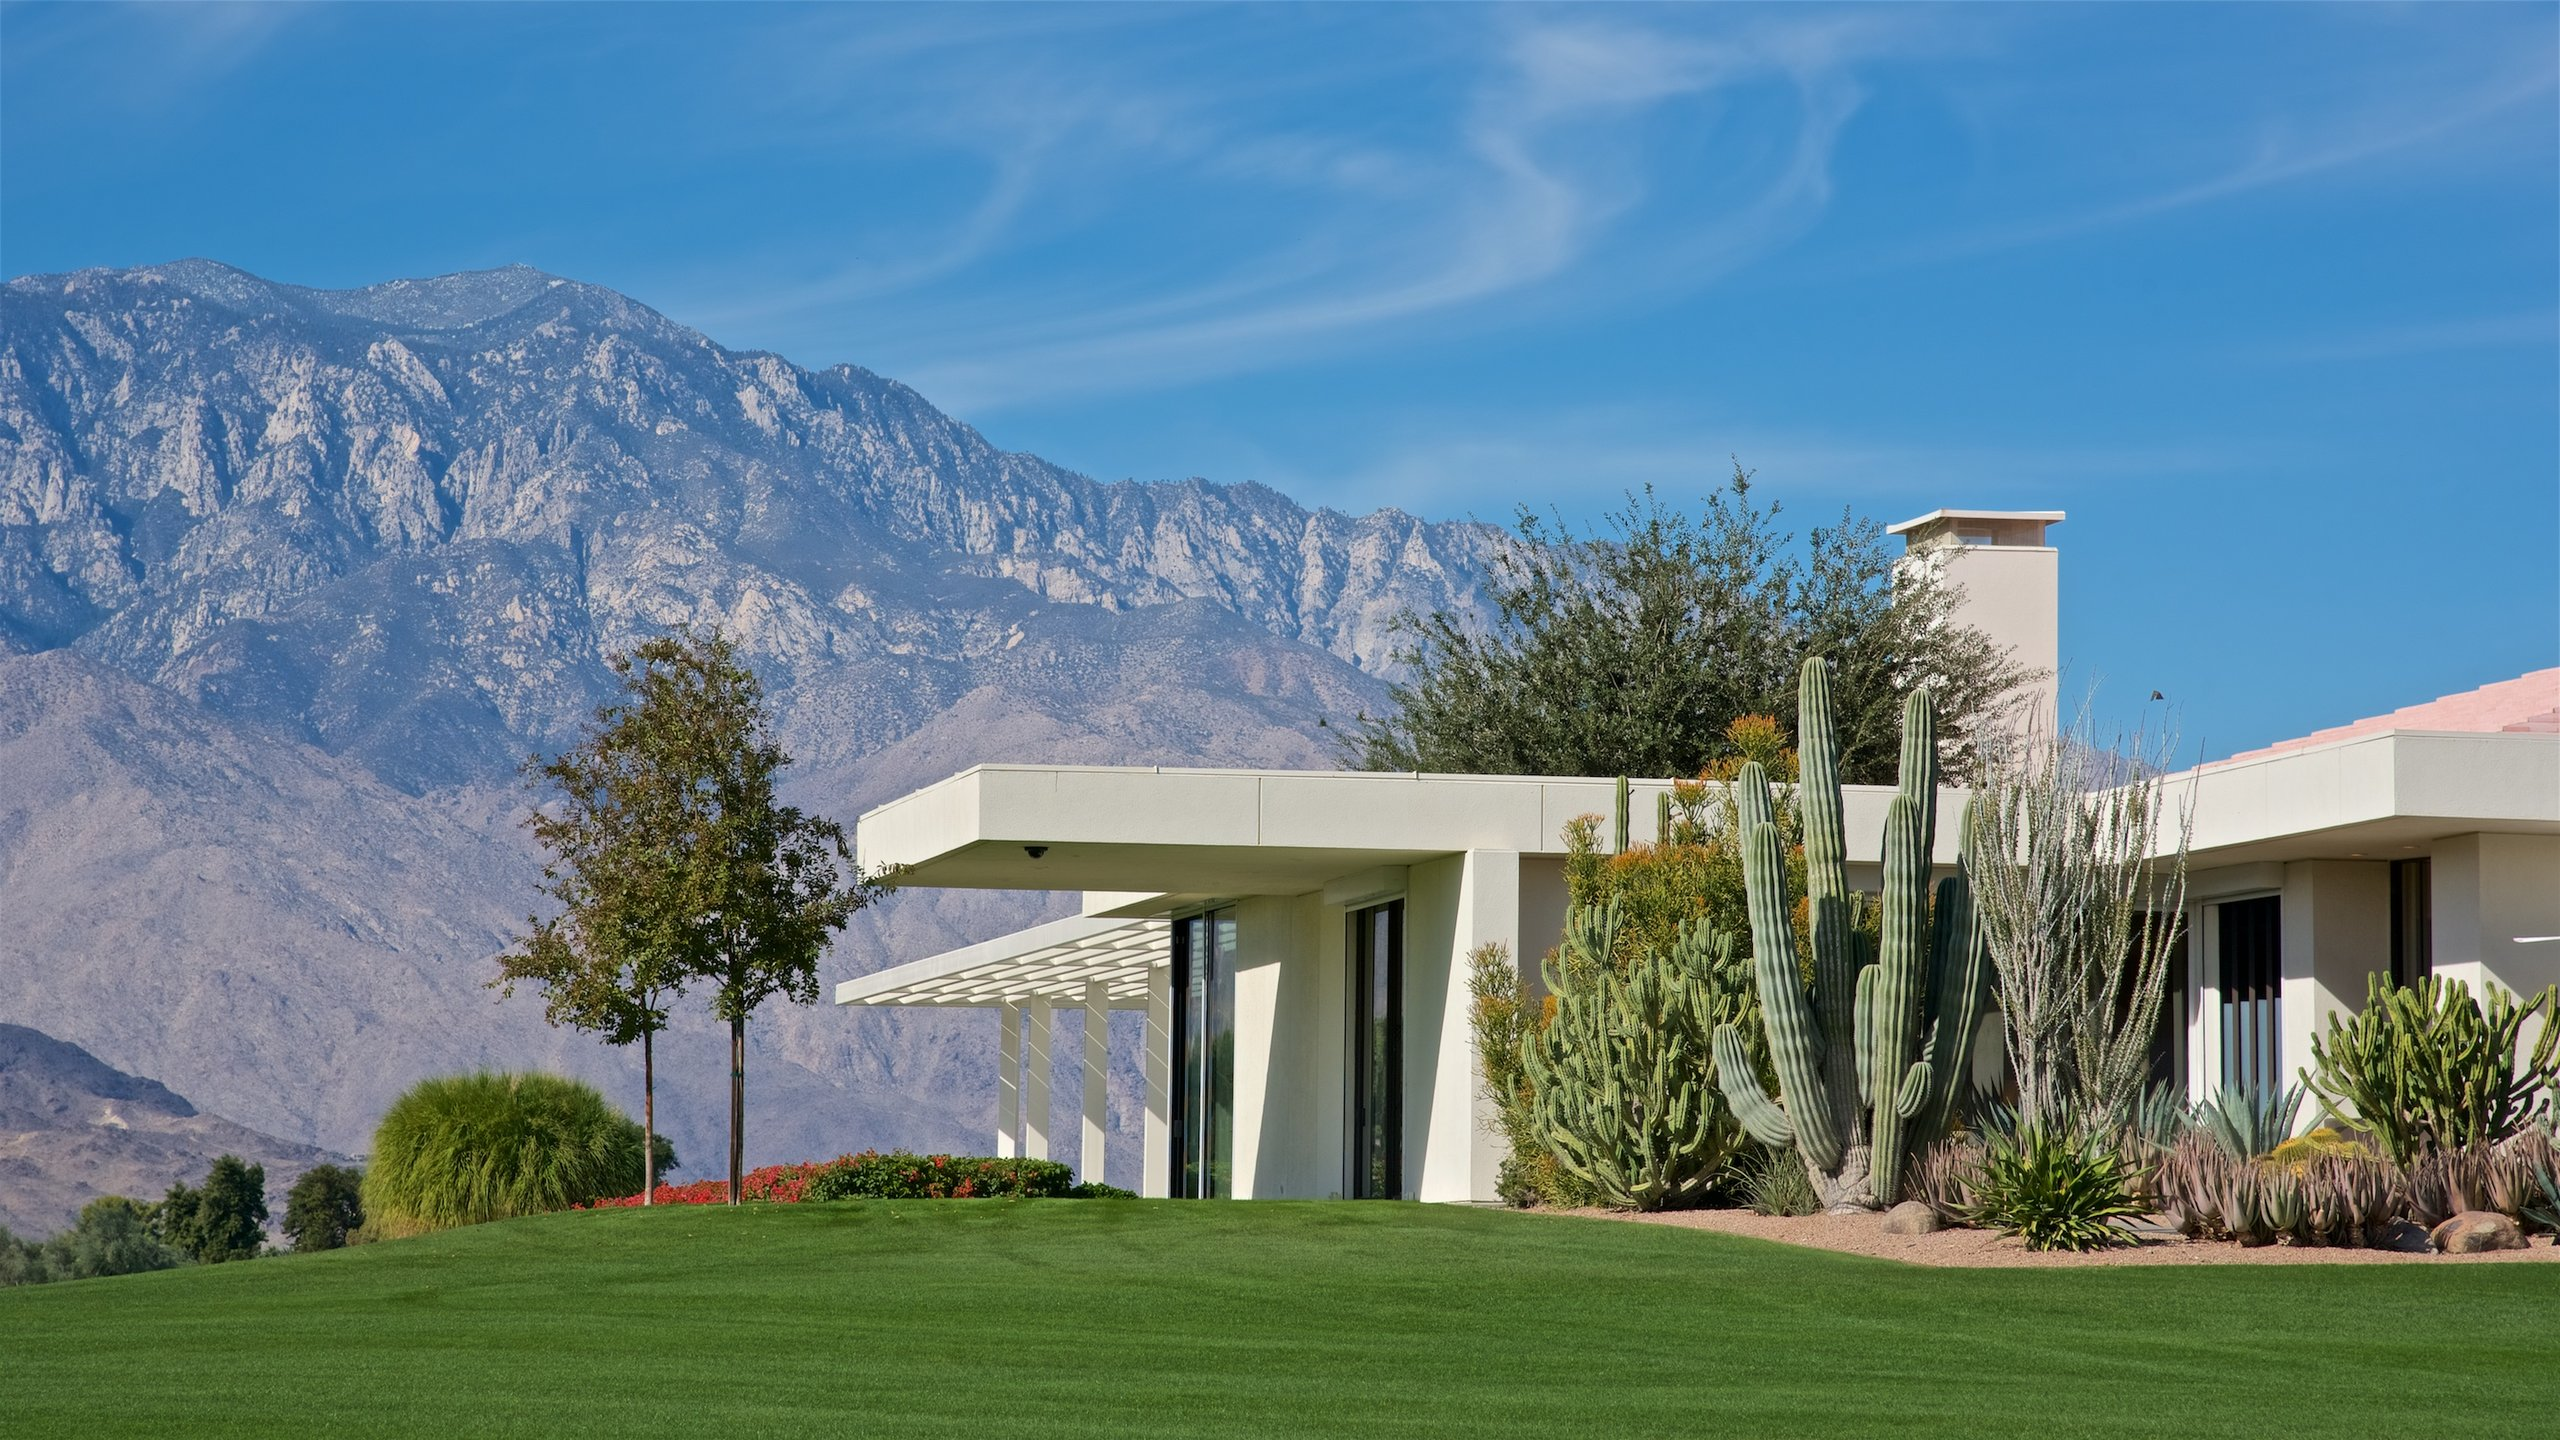 Sunnylands Center and Gardens, Rancho Mirage, California, United States of America